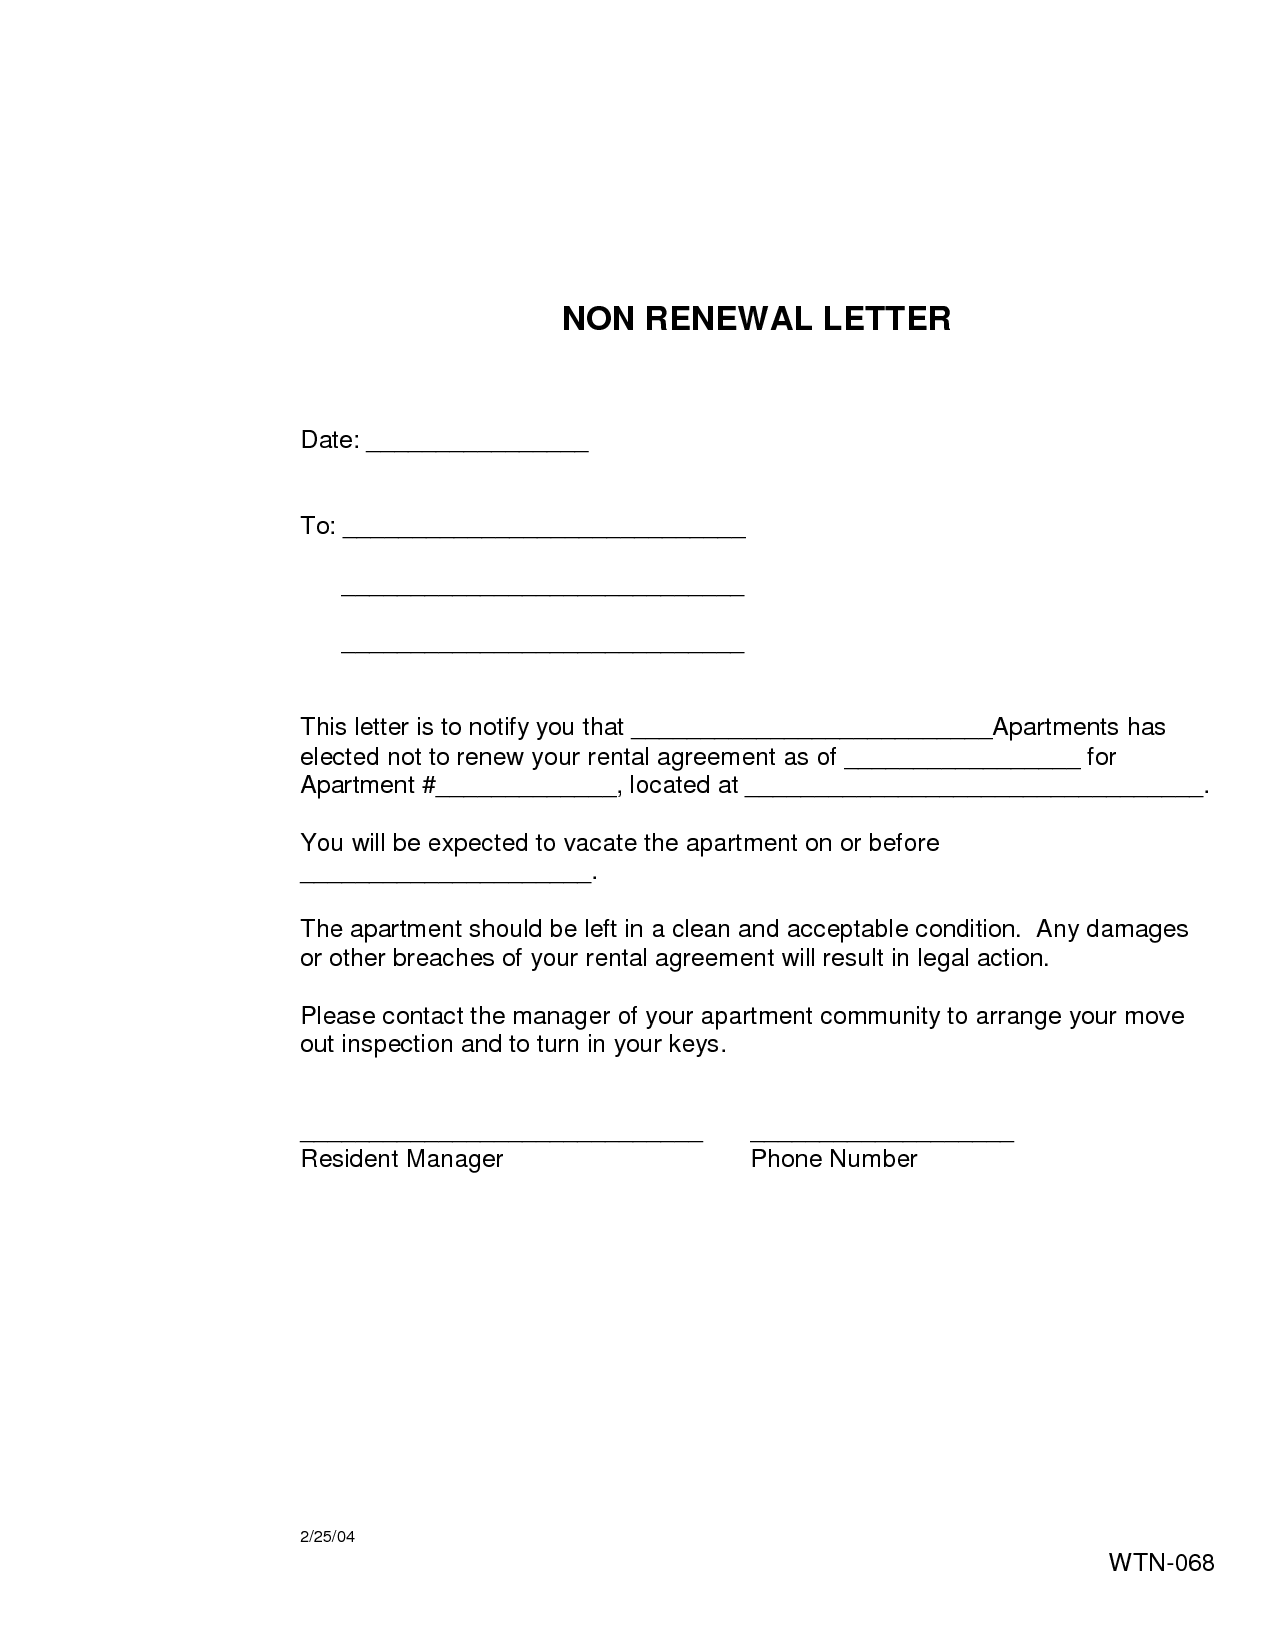 Nonrenewal Of Lease Letter  Free Printable Documents